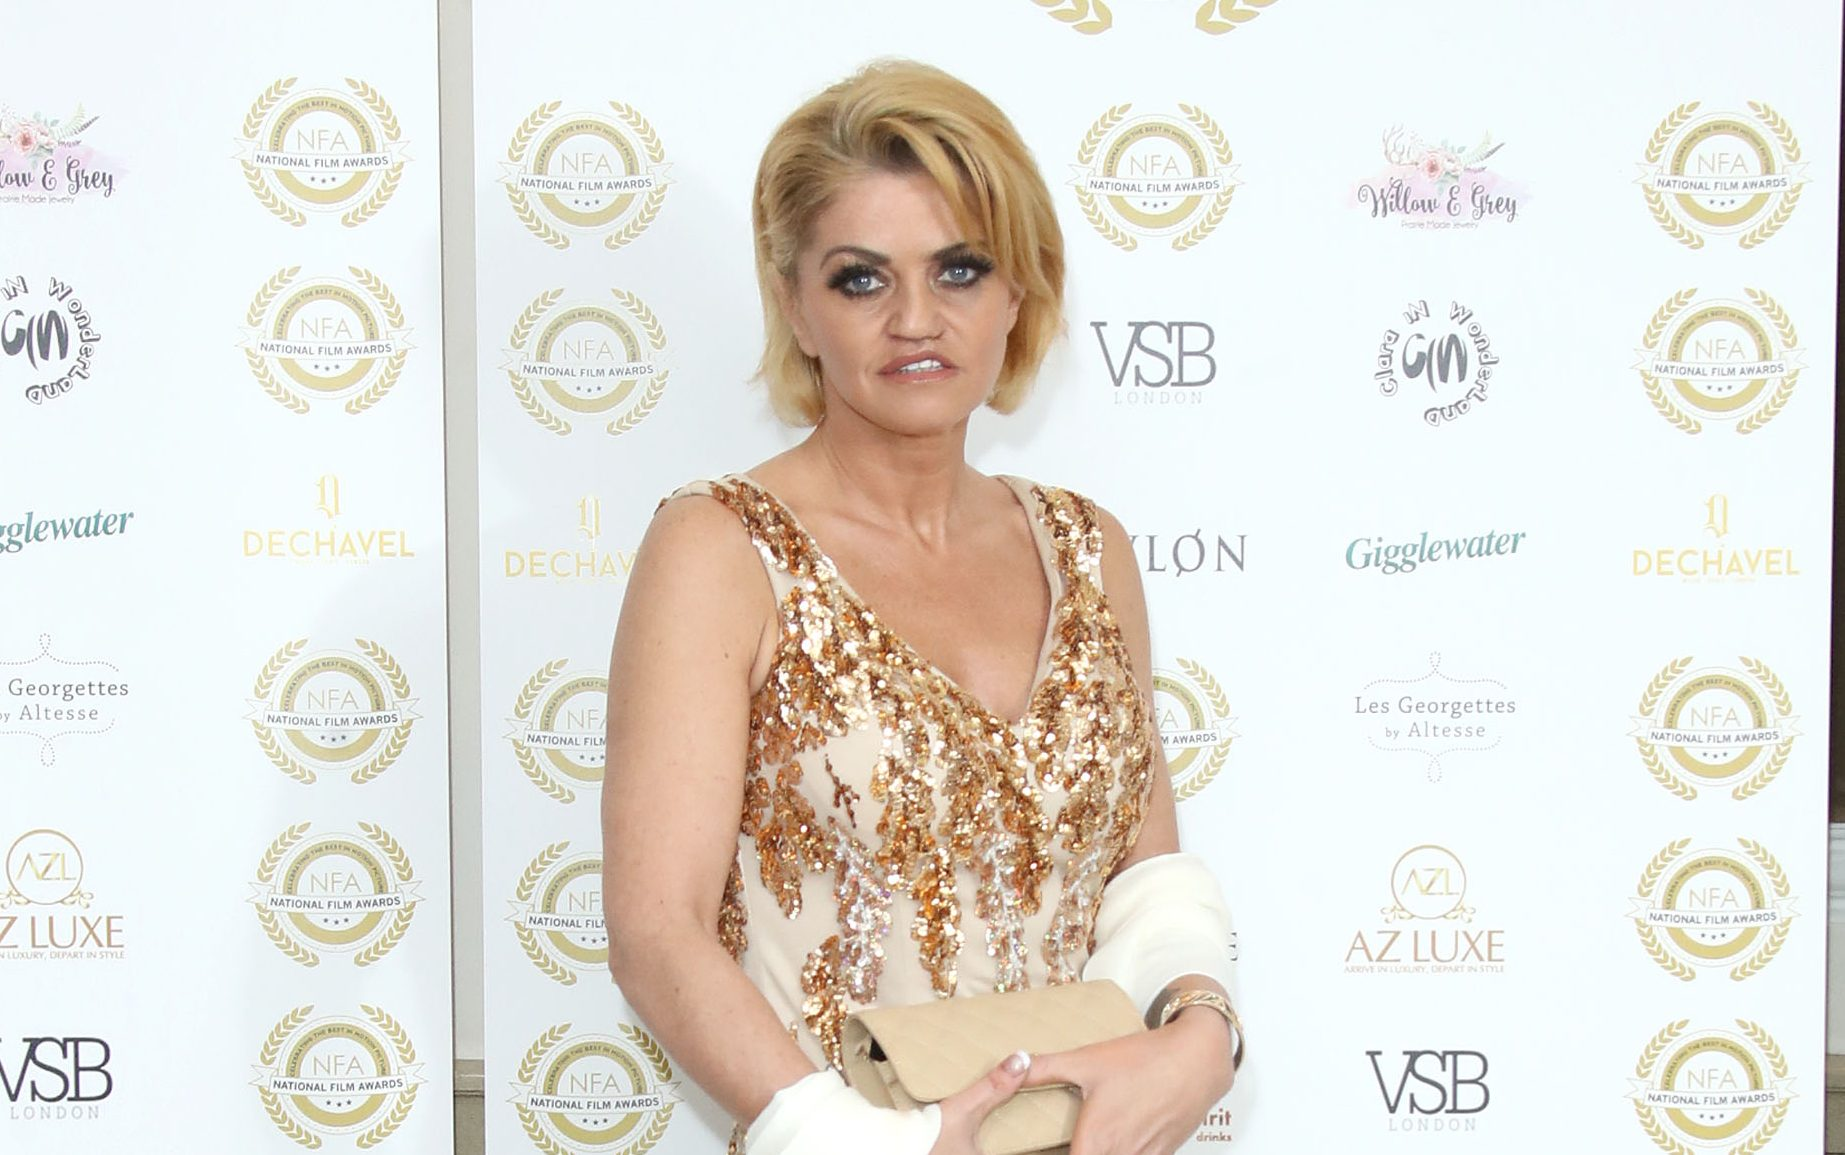 Danniella Westbrook reveals she is battling womb cancer: 'I know I need to fight'